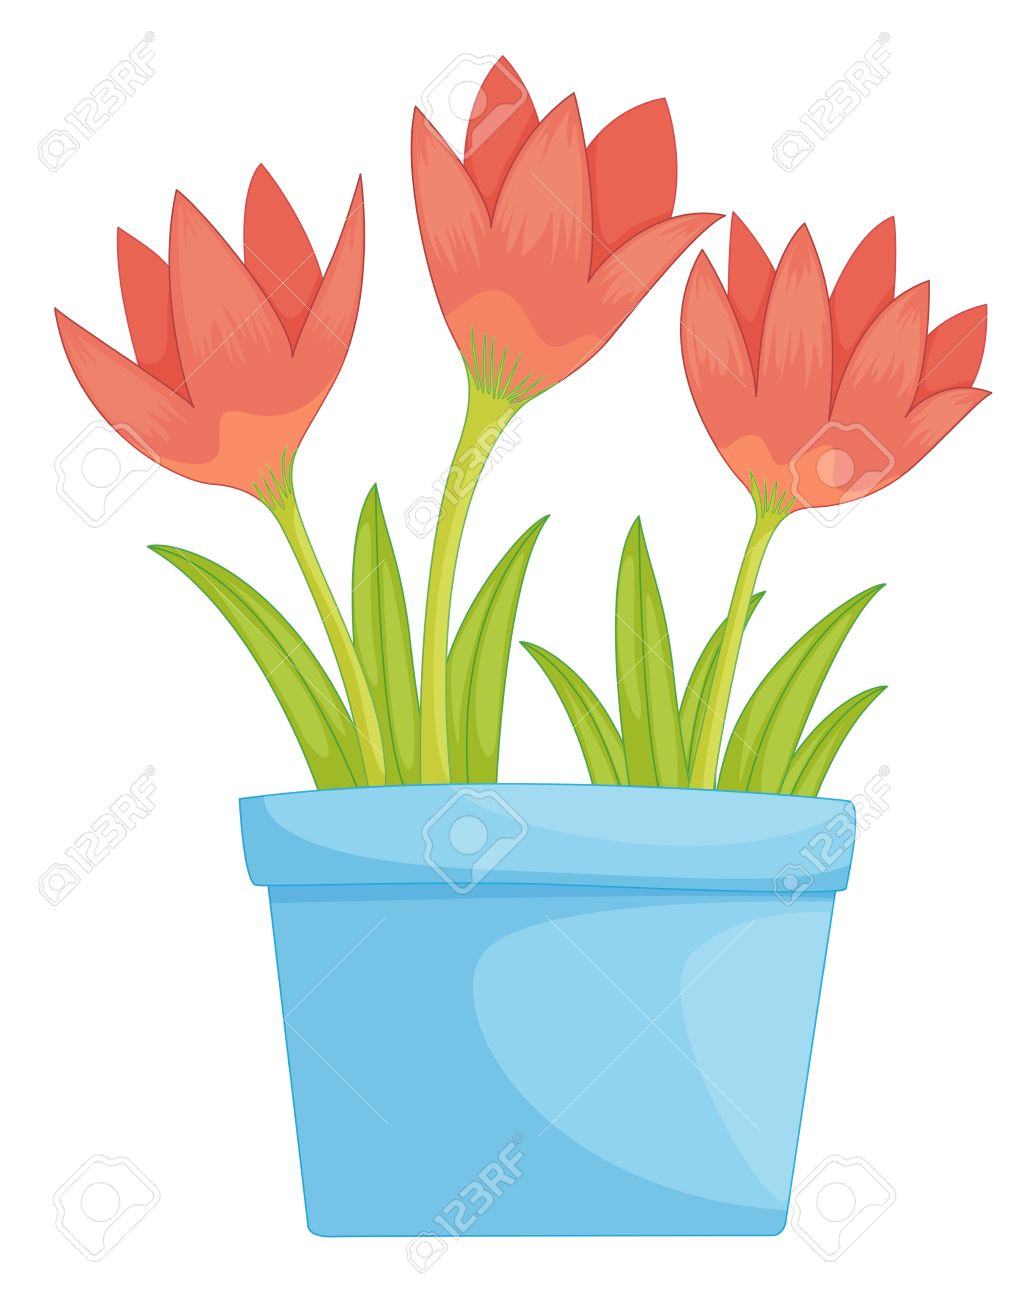 Illustration of a pot of flowers Stock Vector - 13632004